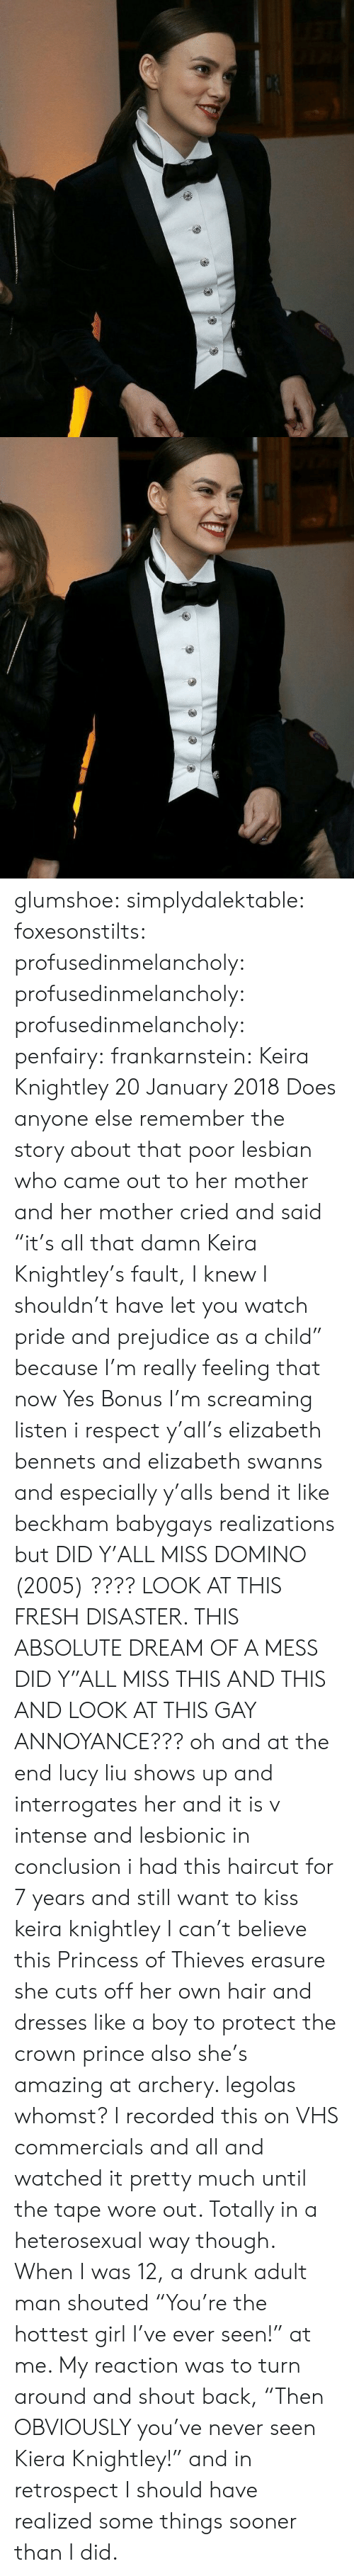 "sooner: glumshoe: simplydalektable:  foxesonstilts:  profusedinmelancholy:  profusedinmelancholy:  profusedinmelancholy:   penfairy:  frankarnstein: Keira Knightley 20 January 2018 Does anyone else remember the story about that poor lesbian who came out to her mother and her mother cried and said ""it's all that damn Keira Knightley's fault, I knew I shouldn't have let you watch pride and prejudice as a child"" because I'm really feeling that now   Yes    Bonus   I'm screaming   listen i respect y'all's elizabeth bennets and elizabeth swanns and especially y'alls bend it like beckham babygays realizations but DID Y'ALL MISS DOMINO (2005) ???? LOOK AT THIS FRESH DISASTER. THIS ABSOLUTE DREAM OF A MESS DID Y""ALL MISS THIS AND THIS AND LOOK AT THIS GAY ANNOYANCE??? oh and at the end lucy liu shows up and interrogates her and it is v intense and lesbionic in conclusion i had this haircut for 7 years and still want to kiss keira knightley  I can't believe this Princess of Thieves erasure she cuts off her own hair and dresses like a boy to protect the crown prince also she's amazing at archery. legolas whomst? I recorded this on VHS commercials and all and watched it pretty much until the tape wore out. Totally in a heterosexual way though.    When I was 12, a drunk adult man shouted ""You're the hottest girl I've ever seen!"" at me.  My reaction was to turn around and shout back, ""Then OBVIOUSLY you've never seen Kiera Knightley!"" and in retrospect I should have realized some things sooner than I did."